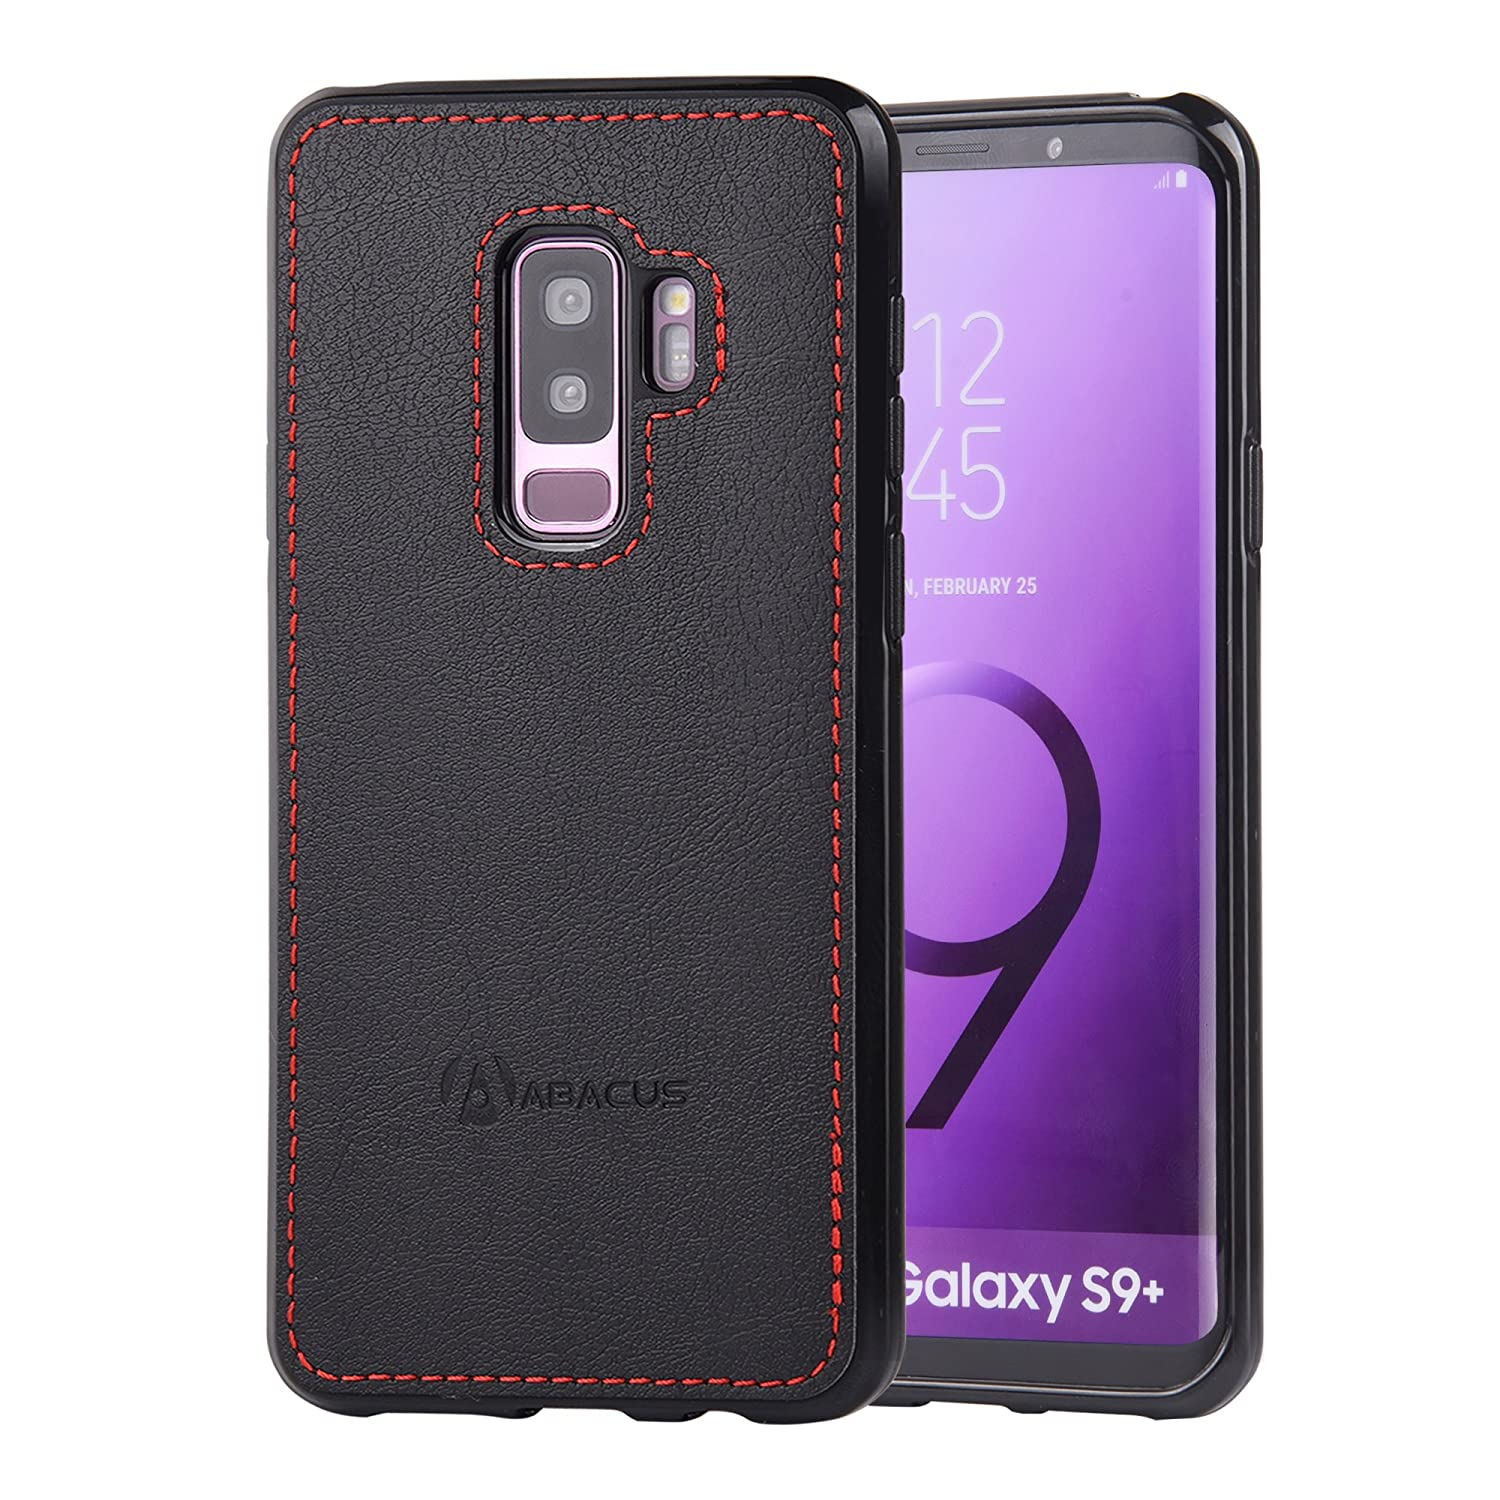 outlet store f2434 2aac4 Abacus24-7 Samsung Galaxy S9 Plus Case, Slim Bumper Back-Protection S 9+  Cover, Black